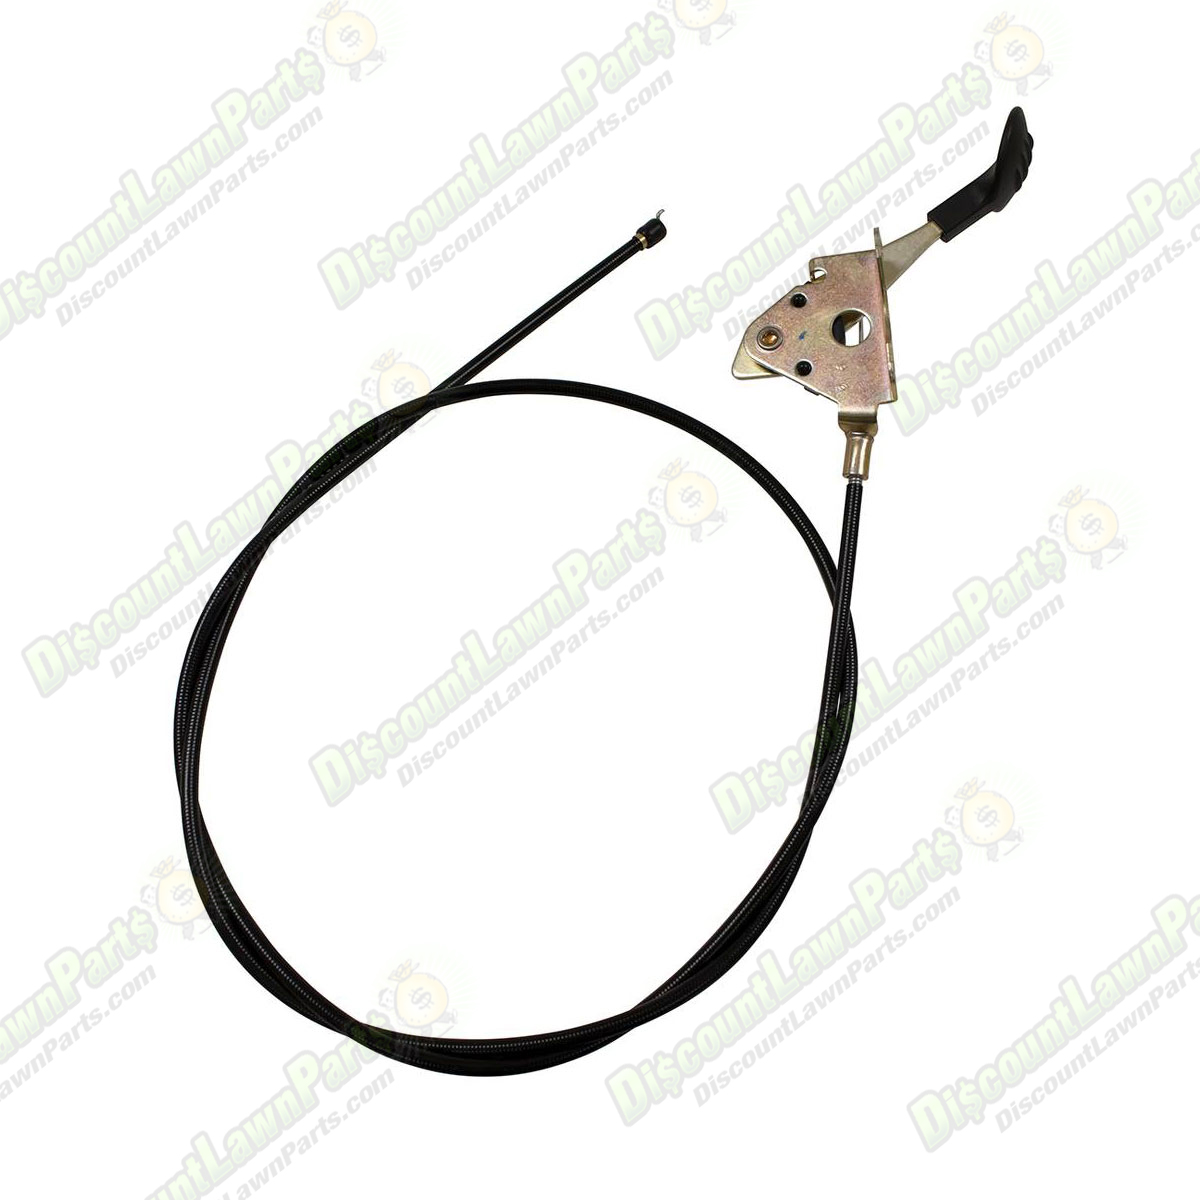 Throttle Control Cable Exmark 116